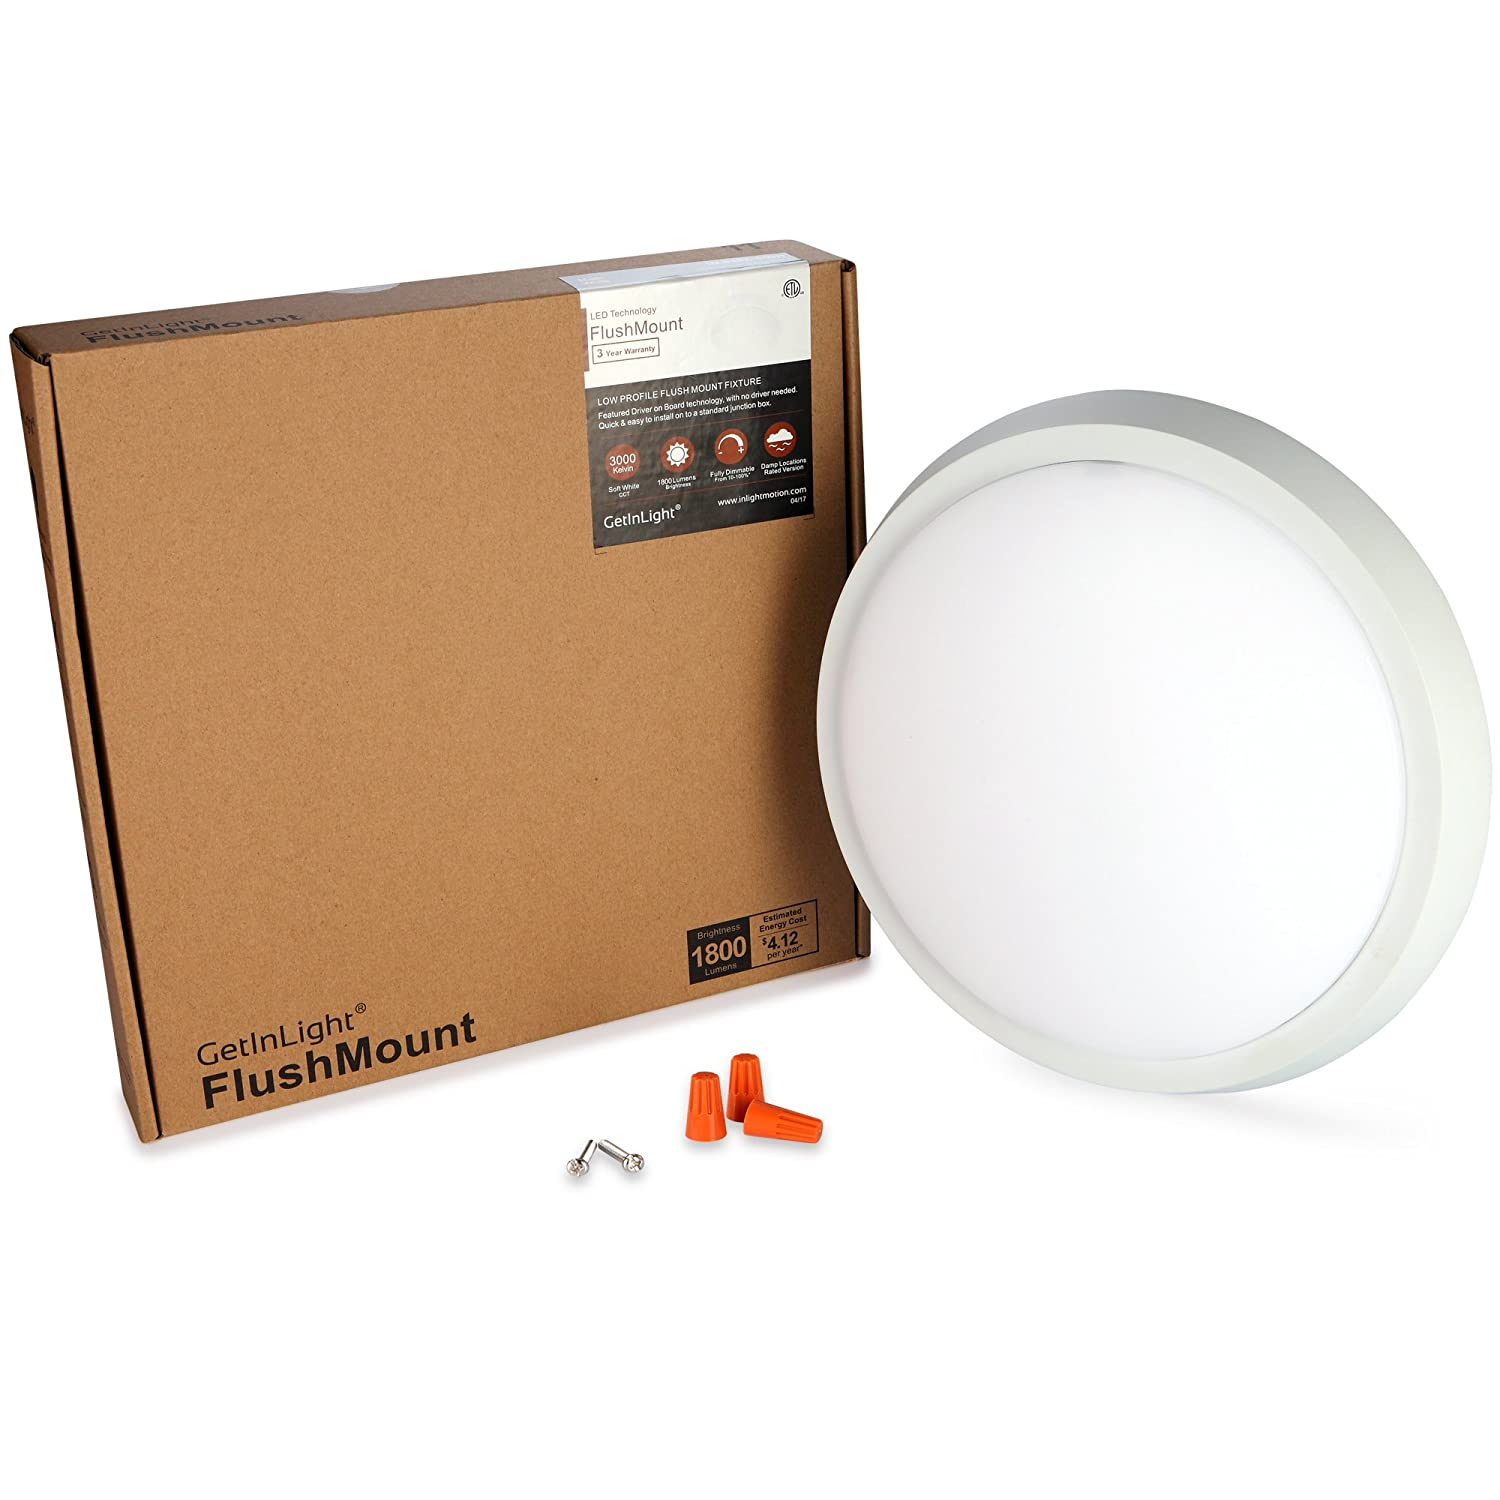 GetInLight 11 Inch Flush Mount LED Ceiling Light with ETL Listed, Soft White 3000K, Matte White Finish, IN-0302-4-WH - - Amazon.com